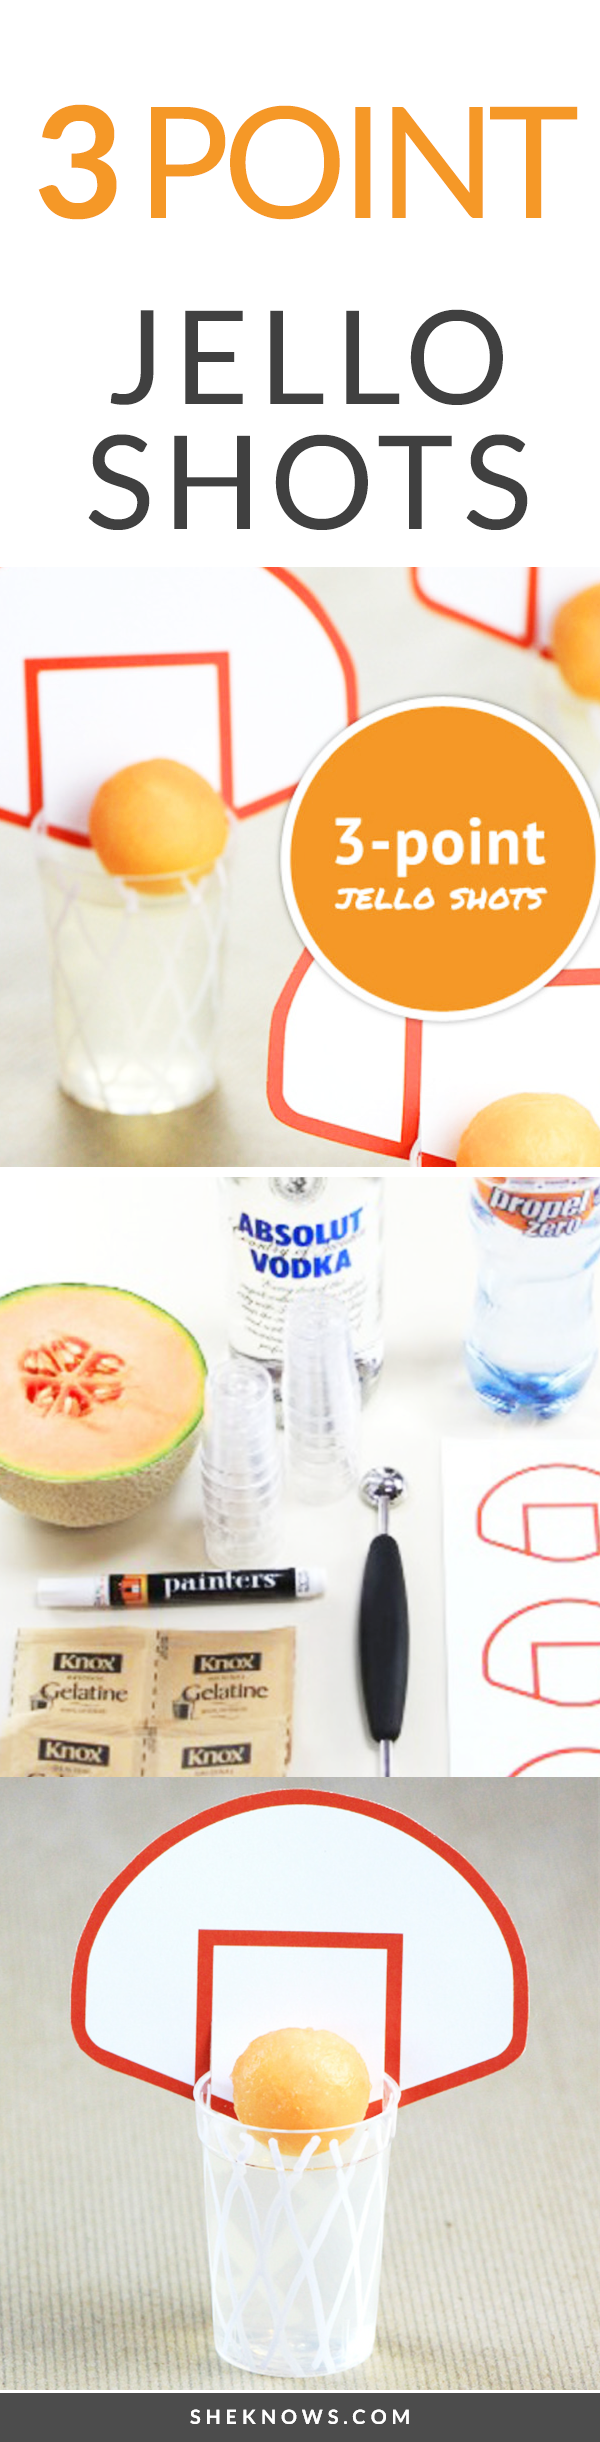 Pin it! March Madness 3-point jello shots